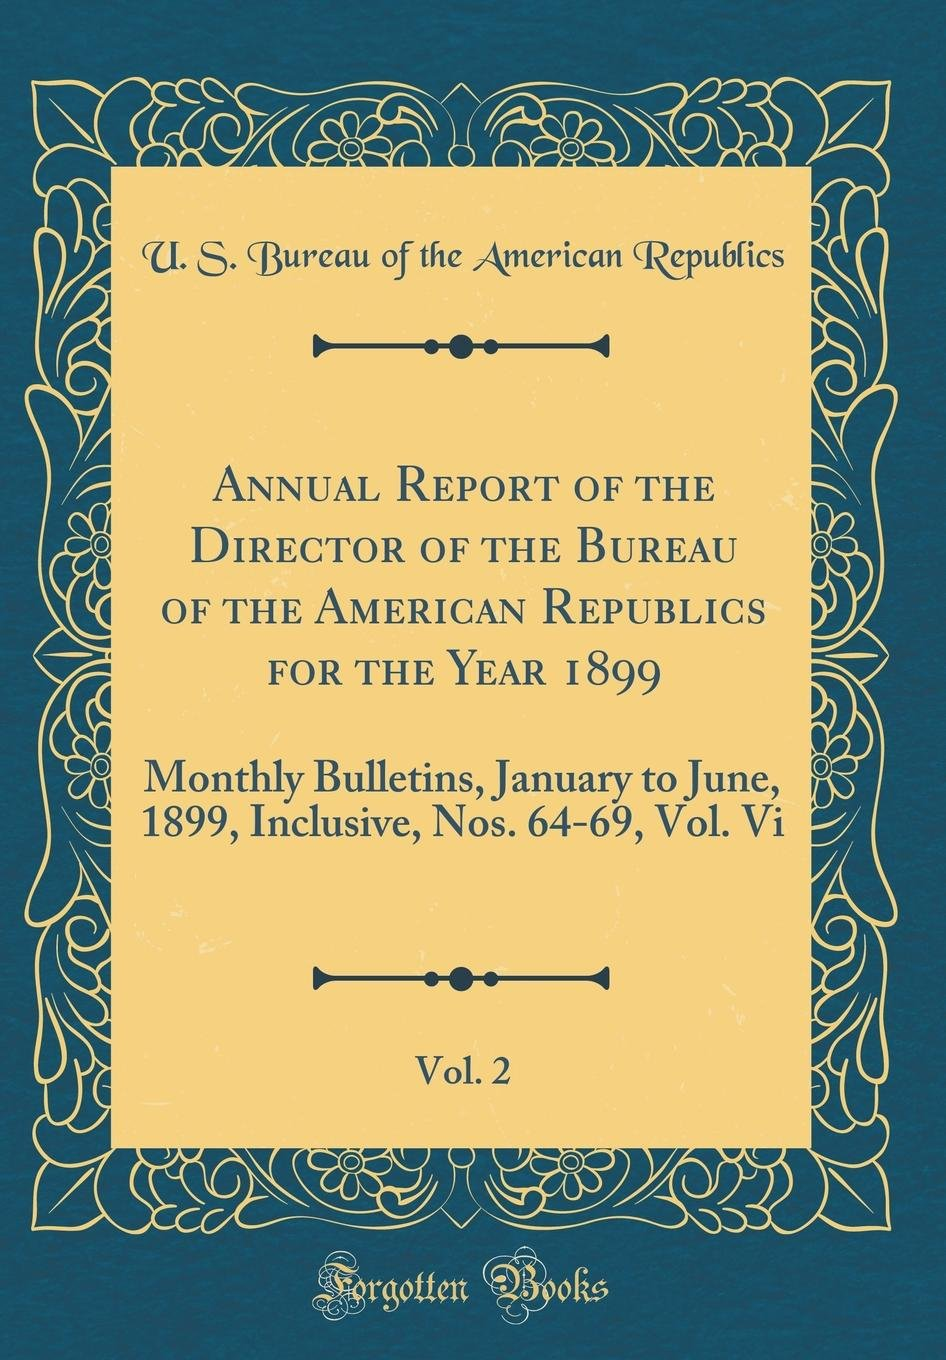 Annual Report of the Director of the Bureau of the American Republics for the Year 1899, Vol. 2: Monthly Bulletins, January to June, 1899, Inclusive, Nos. 64-69, Vol. VI (Classic Reprint) ebook